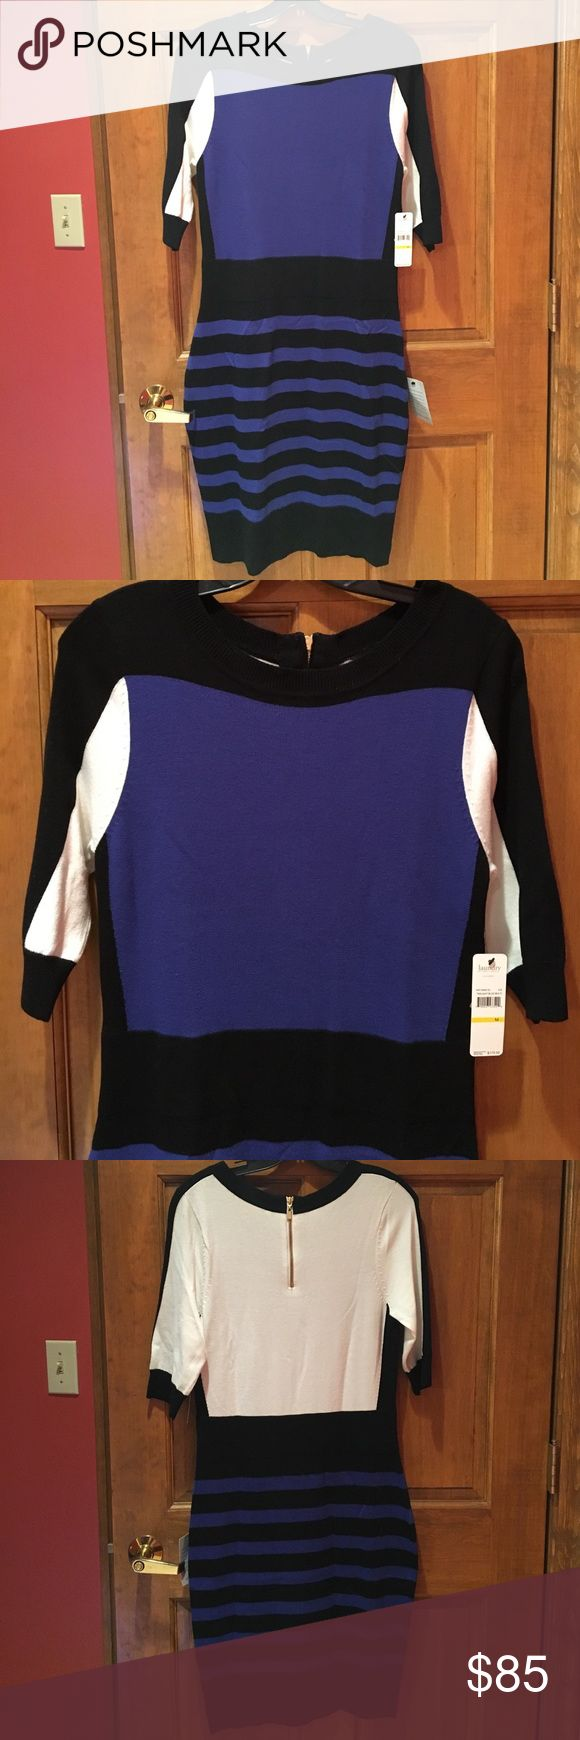 NWT TRICOLOR LAUNDRY DRESS SIZE MEDIUM NWT TRICOLOR LAUNDRY DRESS SIZE MEDIUM. COBALT BLUE, BLACK AND WHITE. HAS GOLD ZIPPER HALFWAY DOWN BACK. OPEN TO REASONABLE OFFERS. Laundry by Shelli Segal Dresses